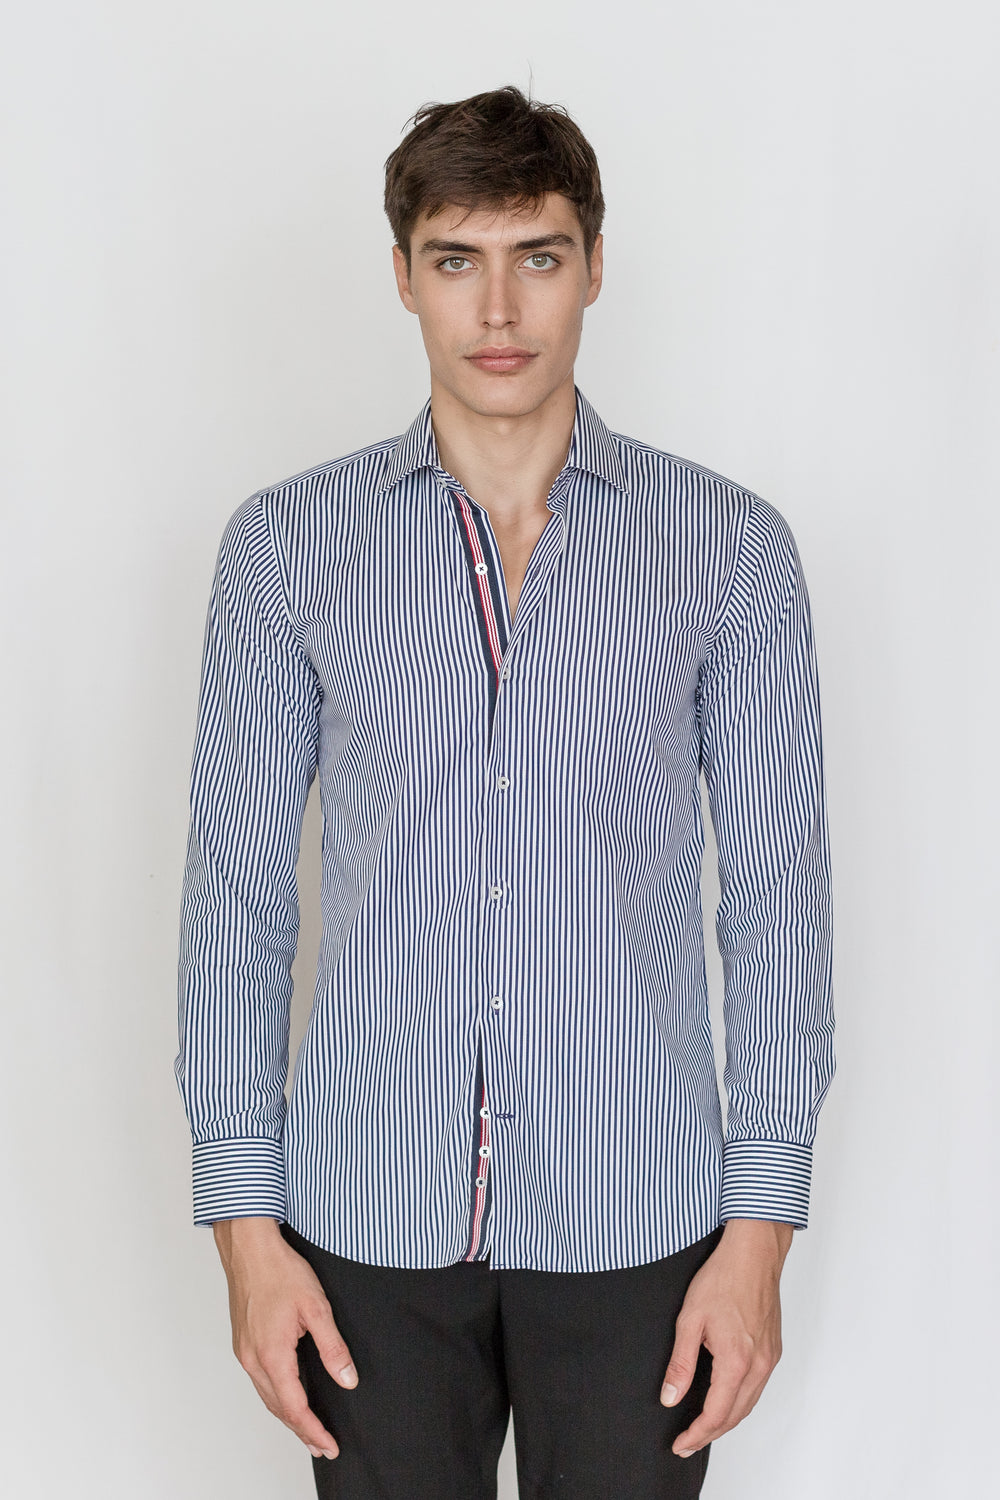 Mason Ward Abenra Navy Stripe Slim Fit/ Regular Cuff Shirt